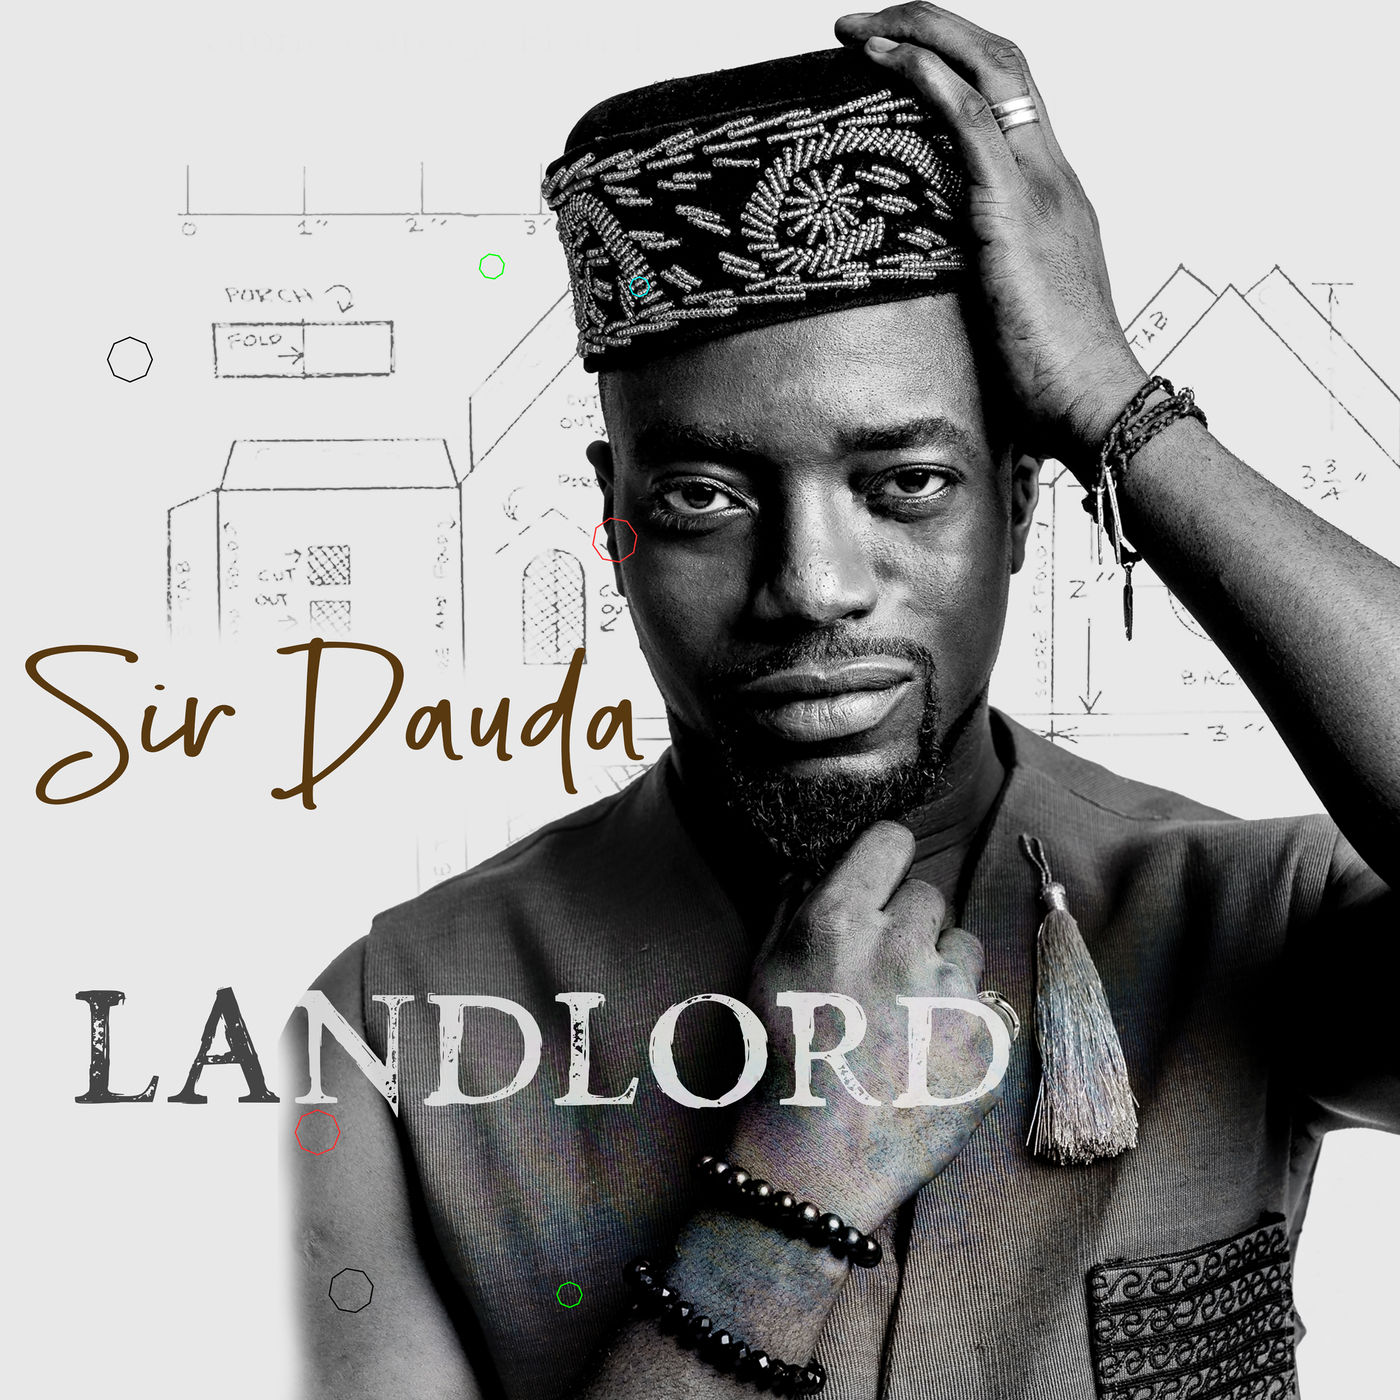 Music: Sir Dauda – Landlord